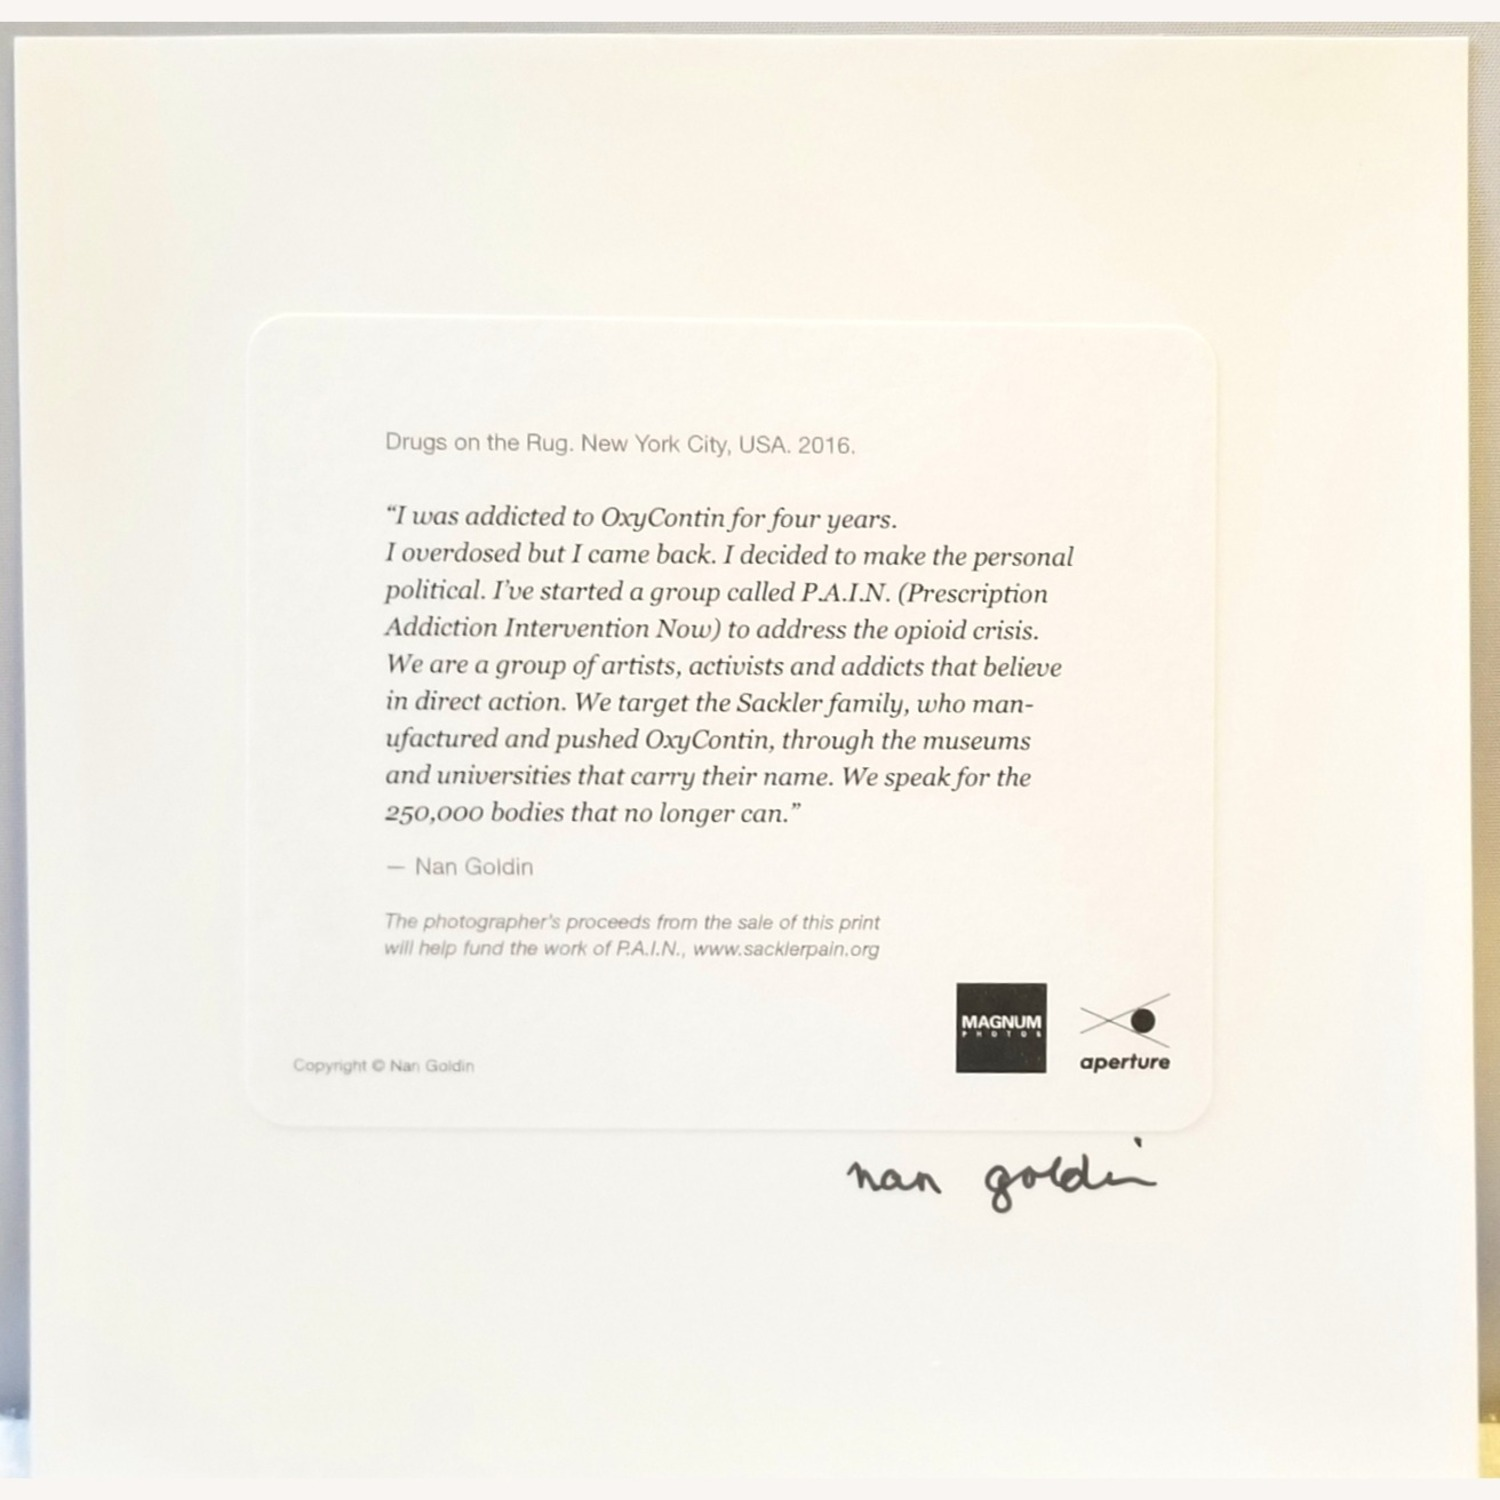 Nan Goldin Signed Limited Edition Photograph - image-2